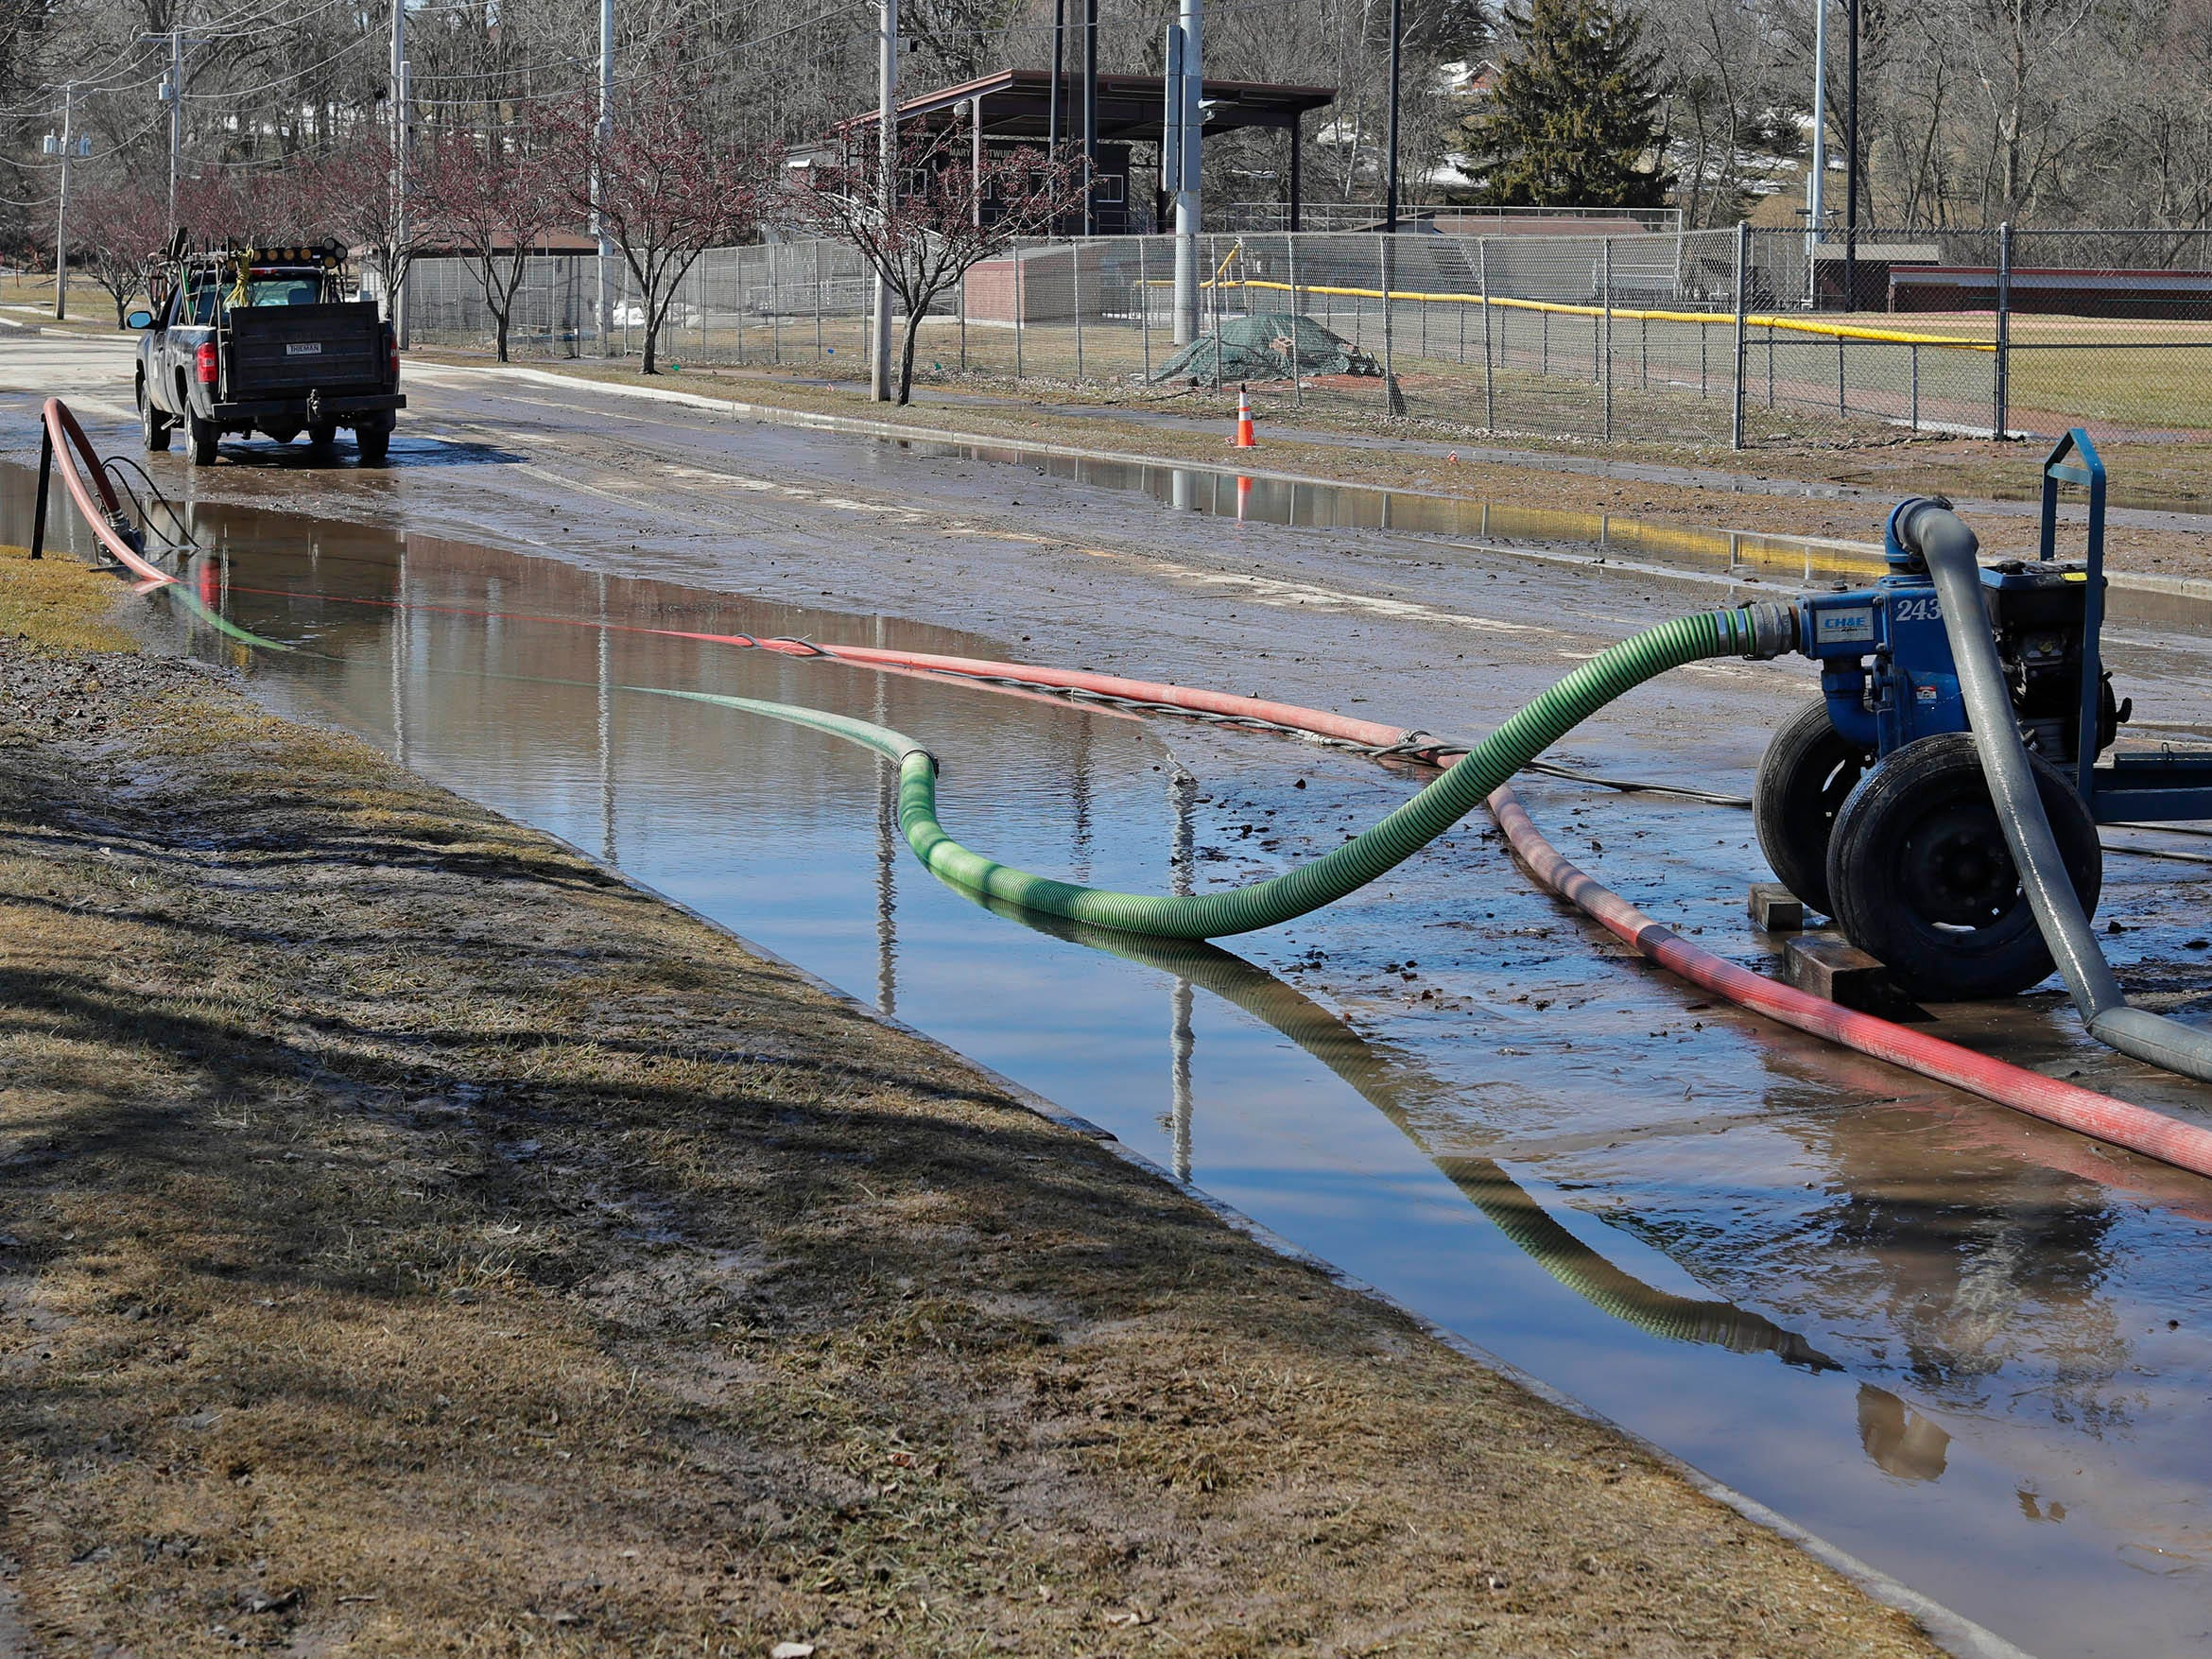 Portable pumps work on moving water to clear catch basins along New Jersey Avenue, Tuesday, March 19, 2019, in Sheboygan, Wis.